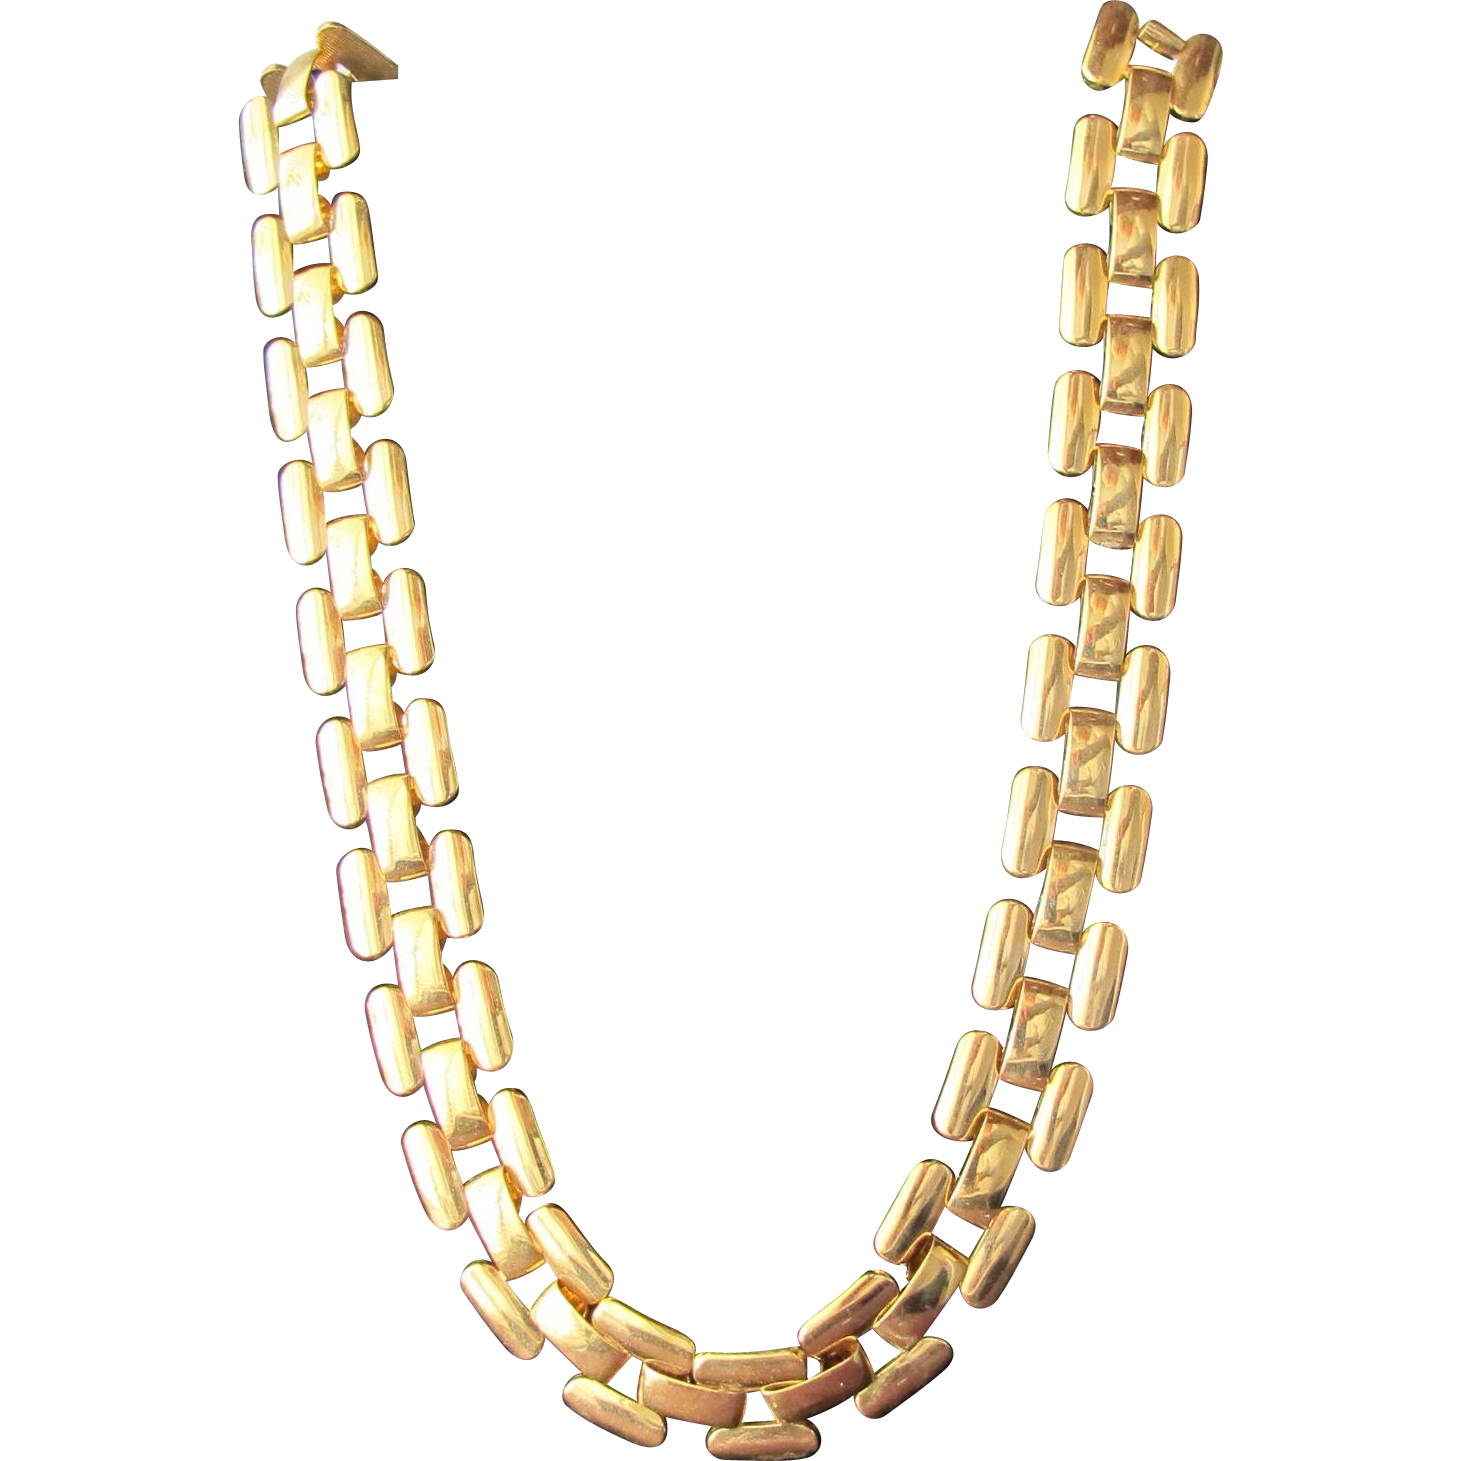 Gold Chain Transparent 22467 | APPLESTORY